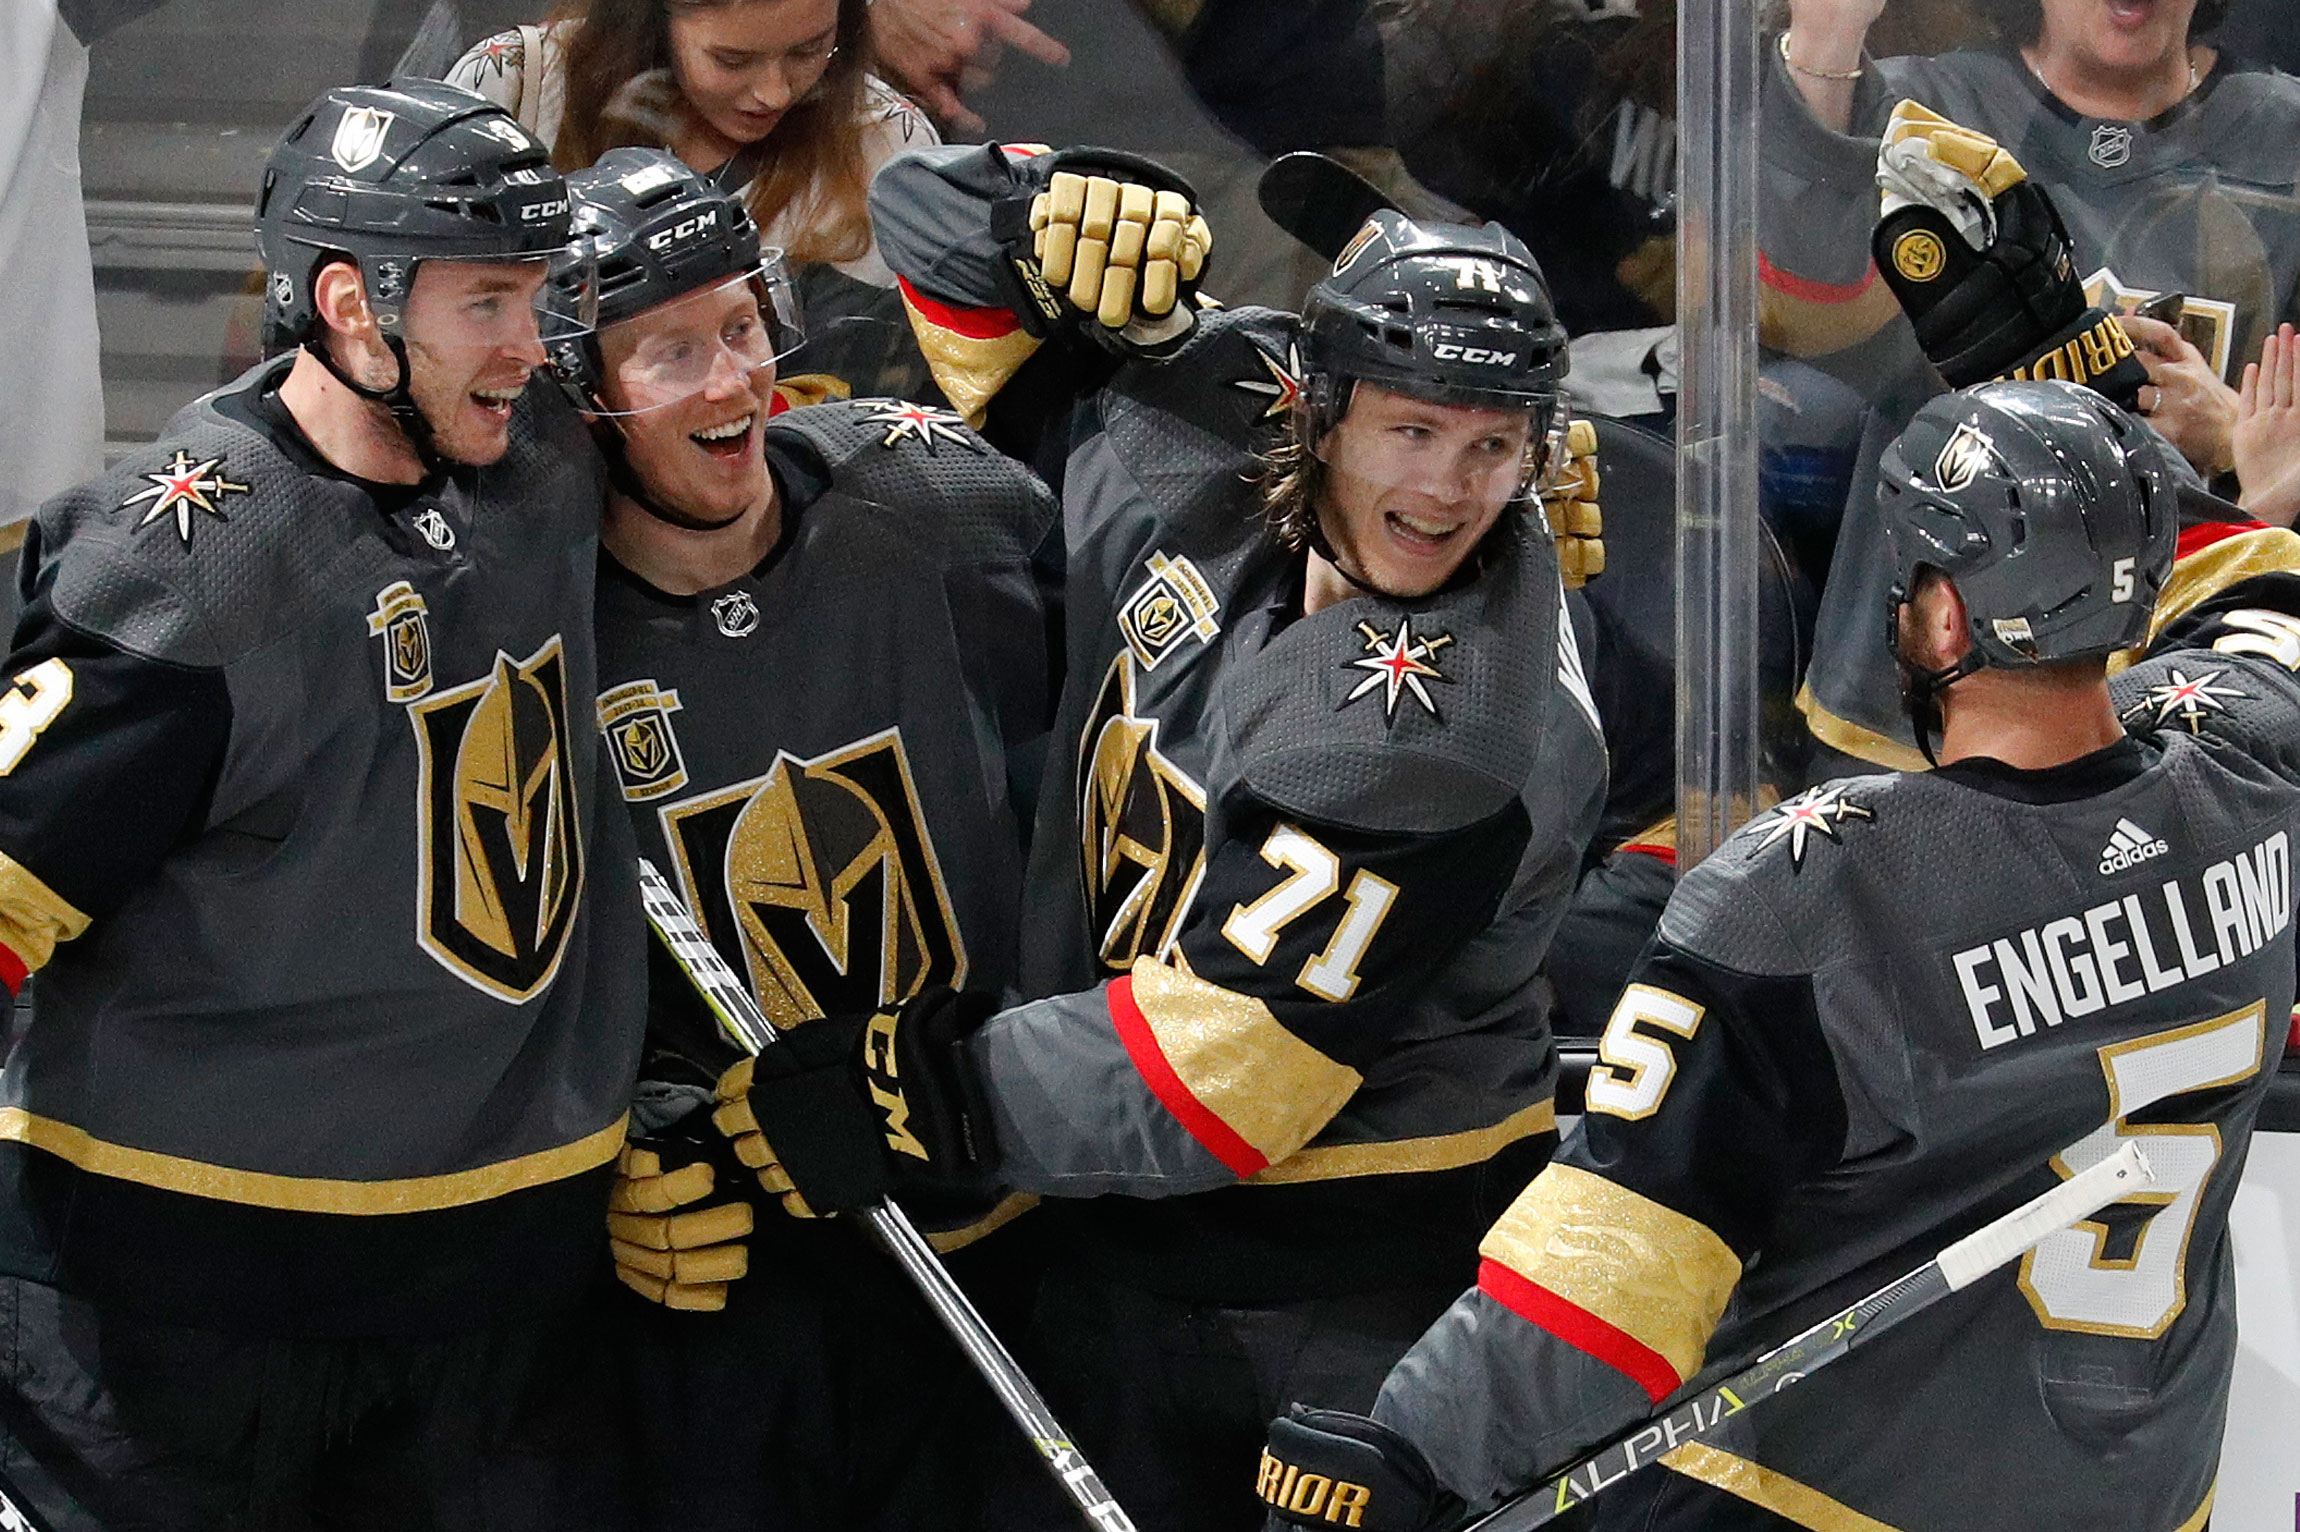 ddae471a248 The Golden Knights' auspicious first season moves into its Stanley ...